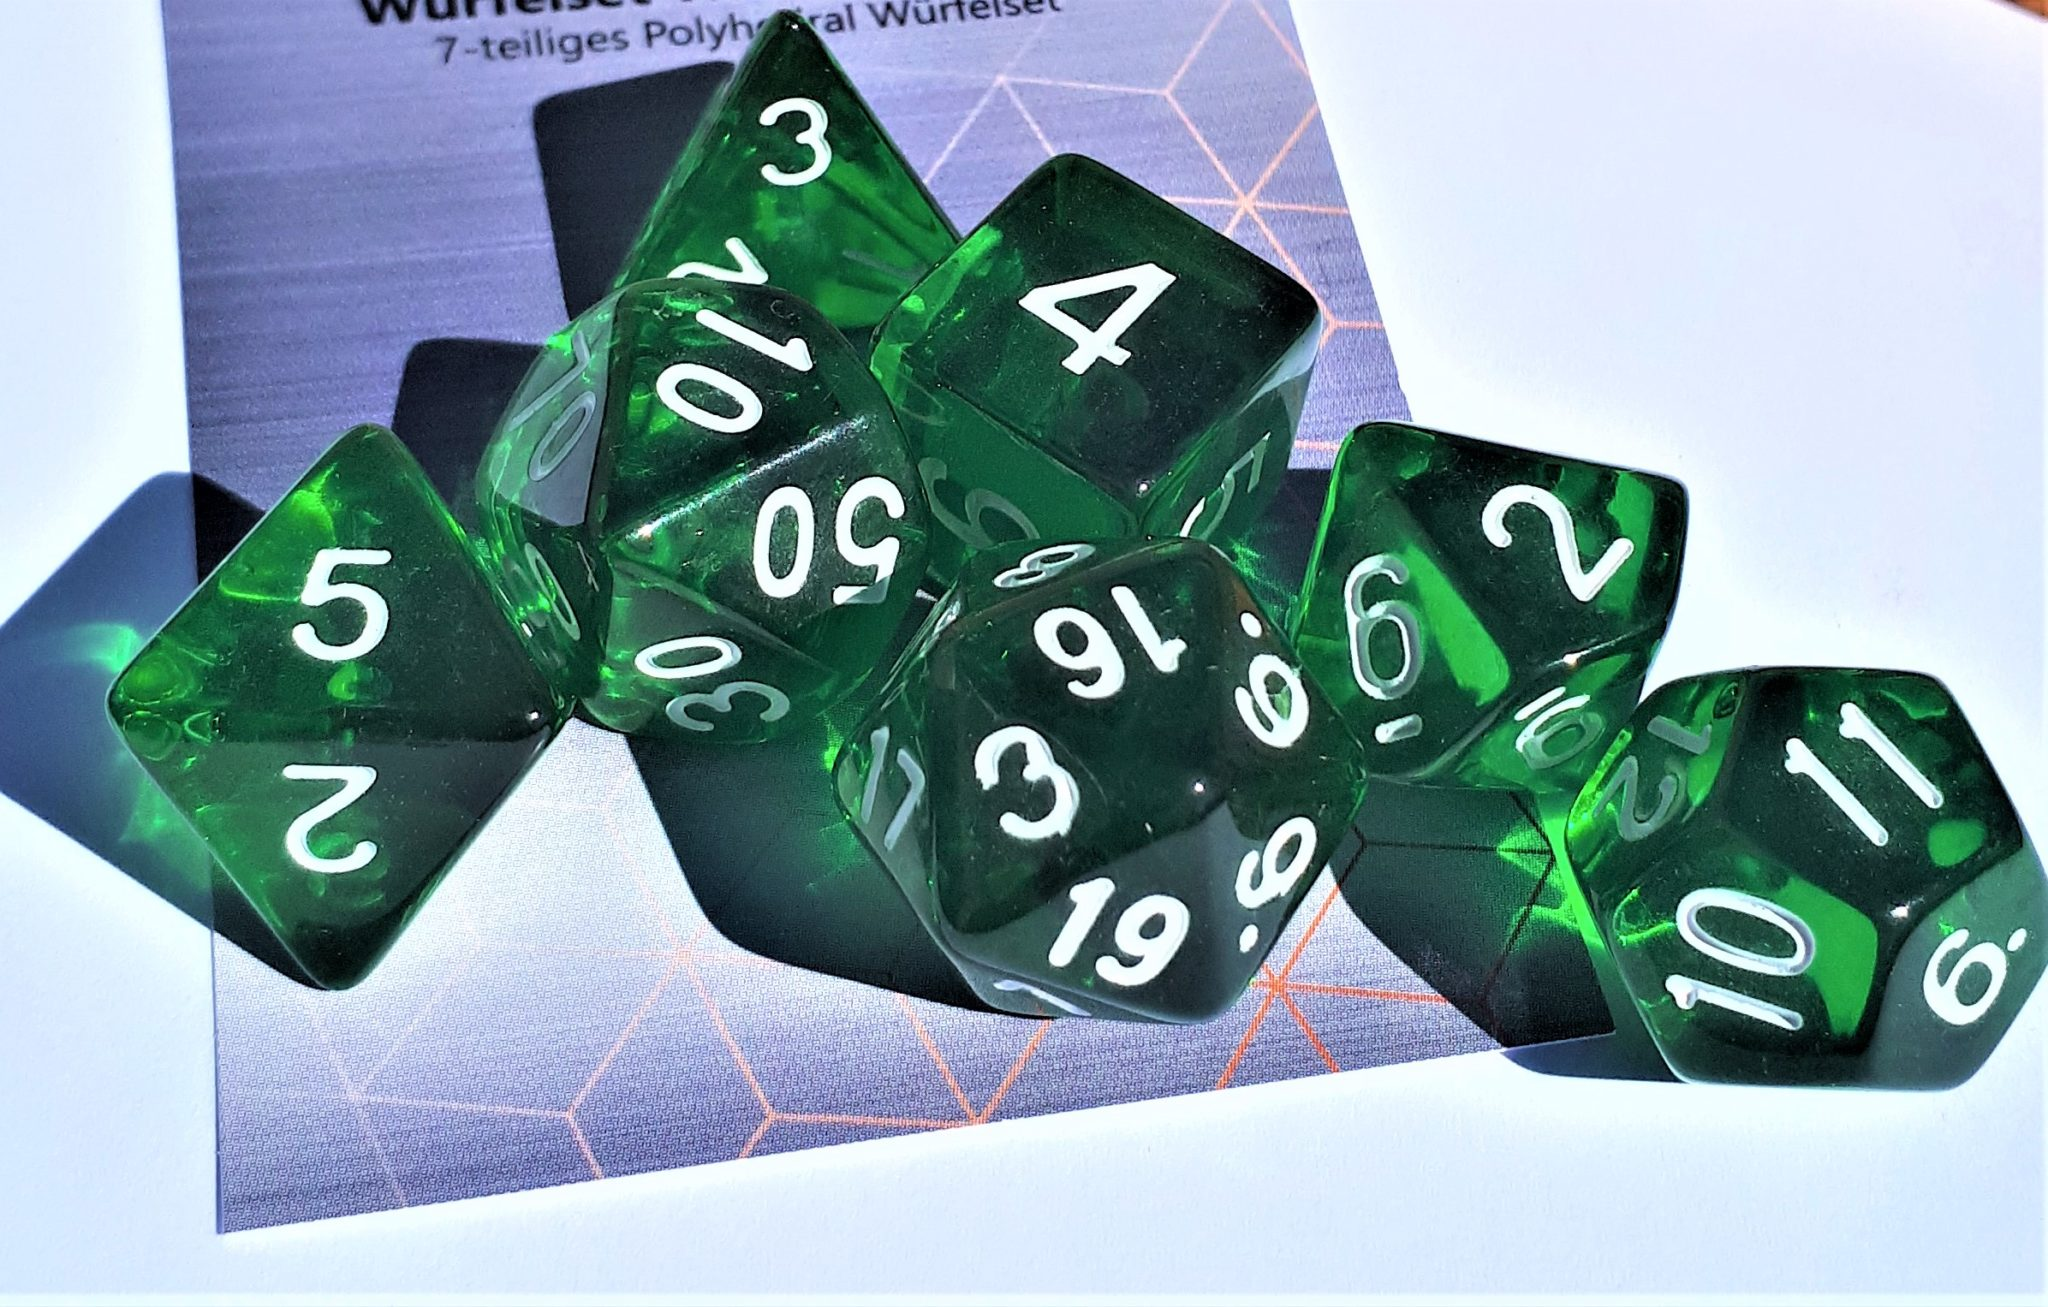 RPG Wuerfel Set Transparent Darkgreen